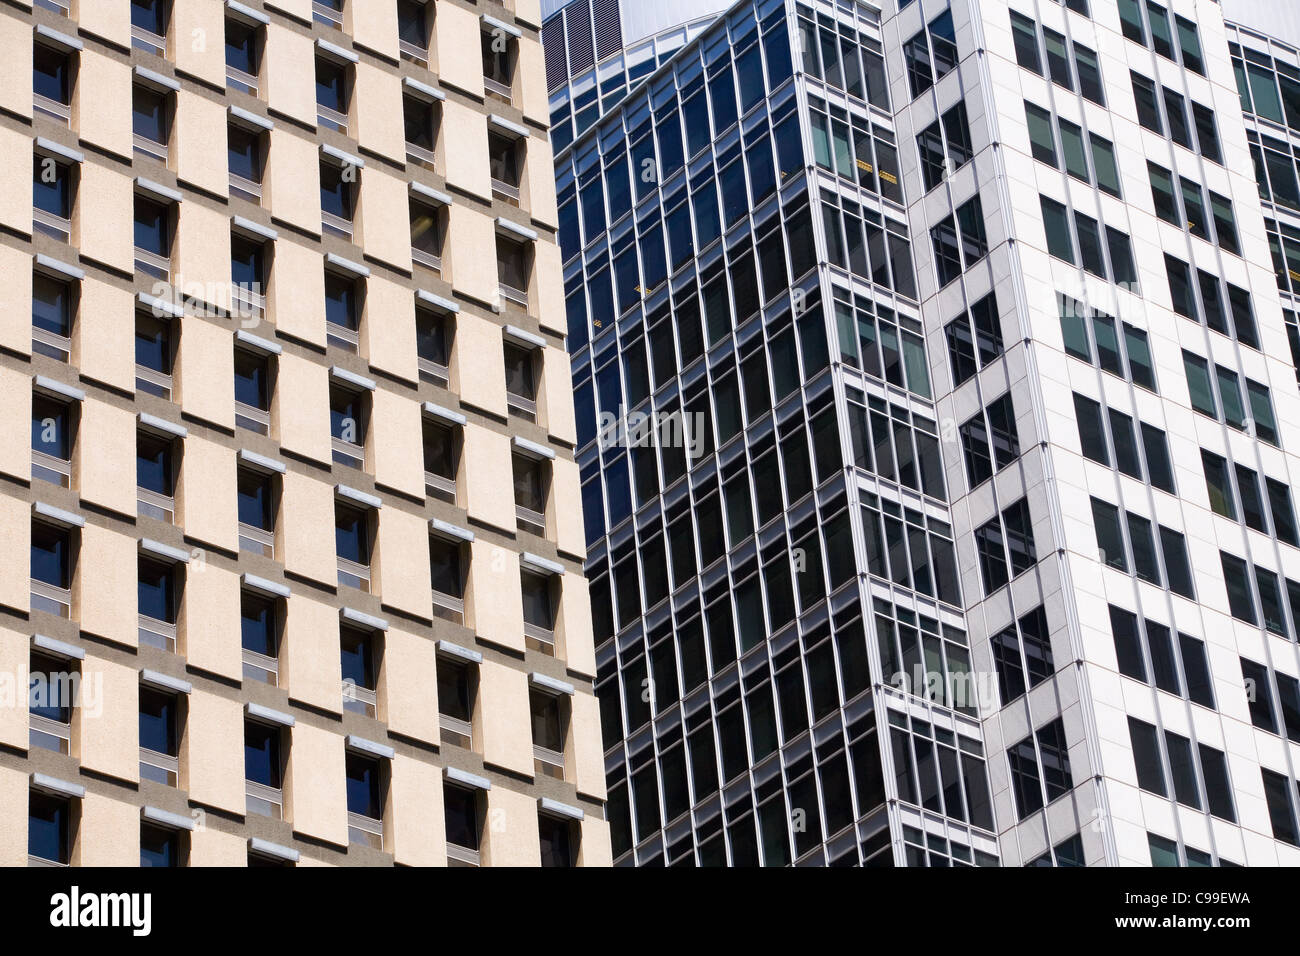 Modern architecture of Sydney's central business district. Sydney, New South Wales, Australia - Stock Image